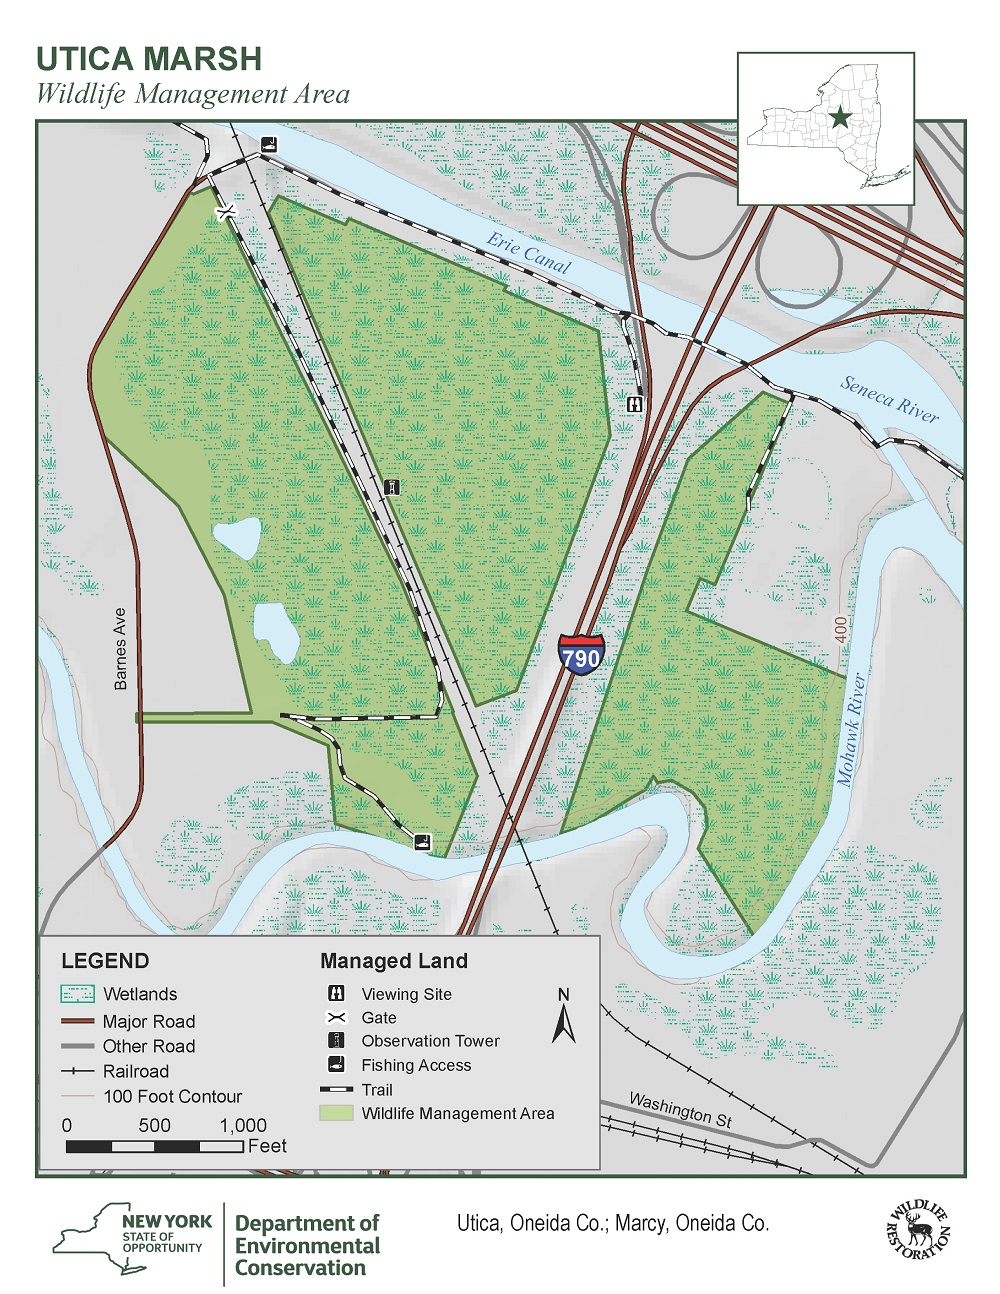 Map of Utica Marsh Wildlife Management Area